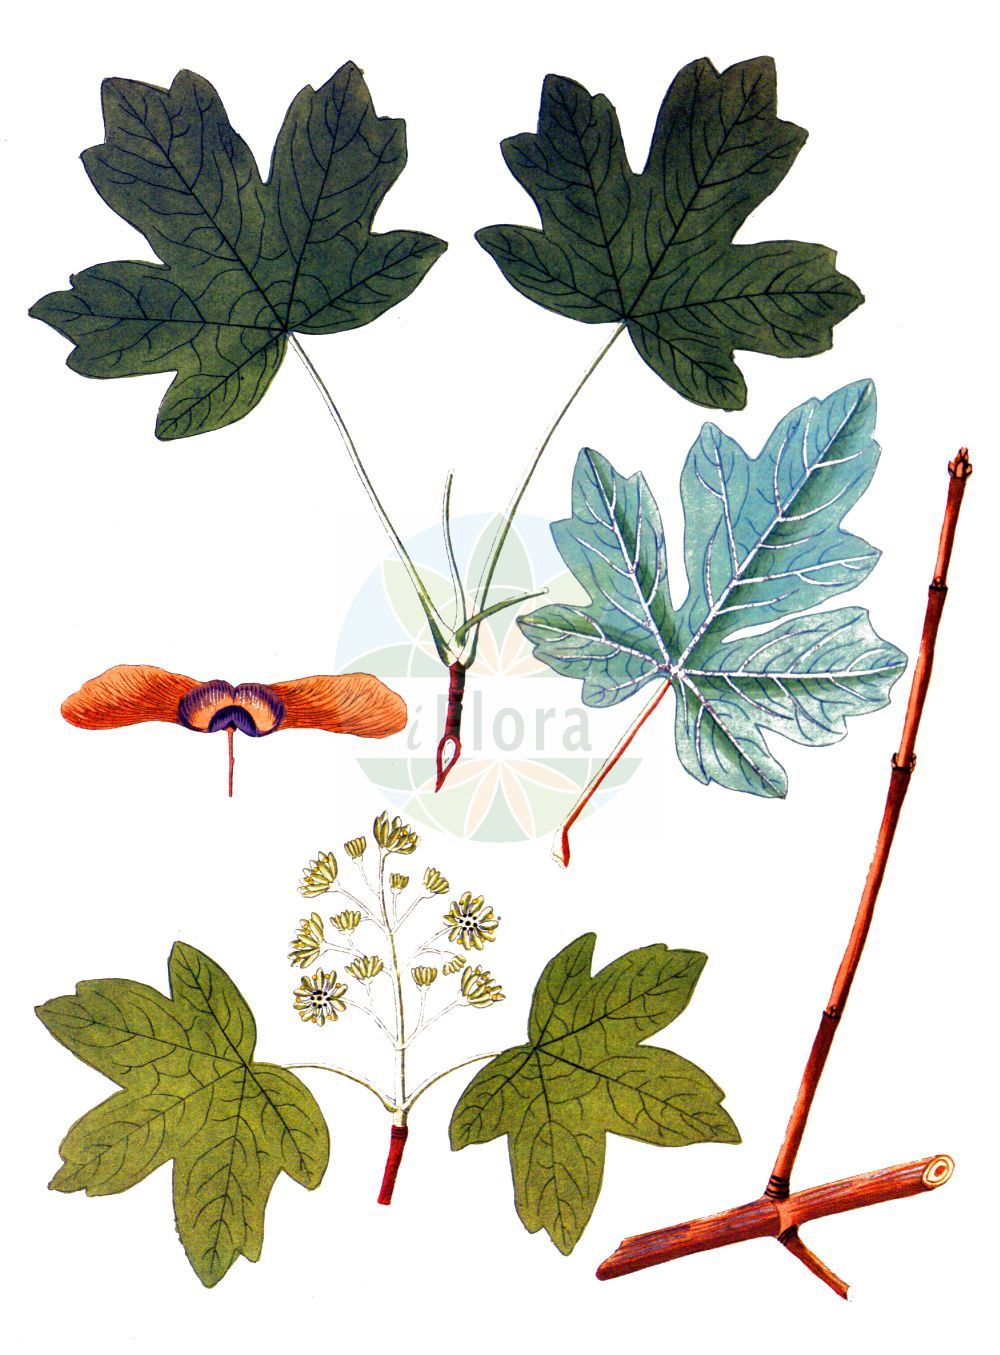 Historische Abbildung von Acer campestre (Feld-Ahorn - Field Maple). Das Bild zeigt Blatt, Bluete, Frucht und Same. ---- Historical Drawing of Acer campestre (Feld-Ahorn - Field Maple).The image is showing leaf, flower, fruit and seed.(Acer campestre,Feld-Ahorn,Field Maple,Acer acuminatilobum,Acer affine,Acer austriacum,Acer bedoei,Acer campestre,Acer collinum,Acer leiocarpon,Acer microcarpon,Acer molle,Feld-Ahorn,Field Maple,Common Maple,Hedge Maple,Maser,Acer,Ahorn,Maple,Sapindaceae,Seifenbaumgewaechse,Soapberry family,Blatt,Bluete,Frucht,Same,leaf,flower,fruit,seed,Krauss (1802f))